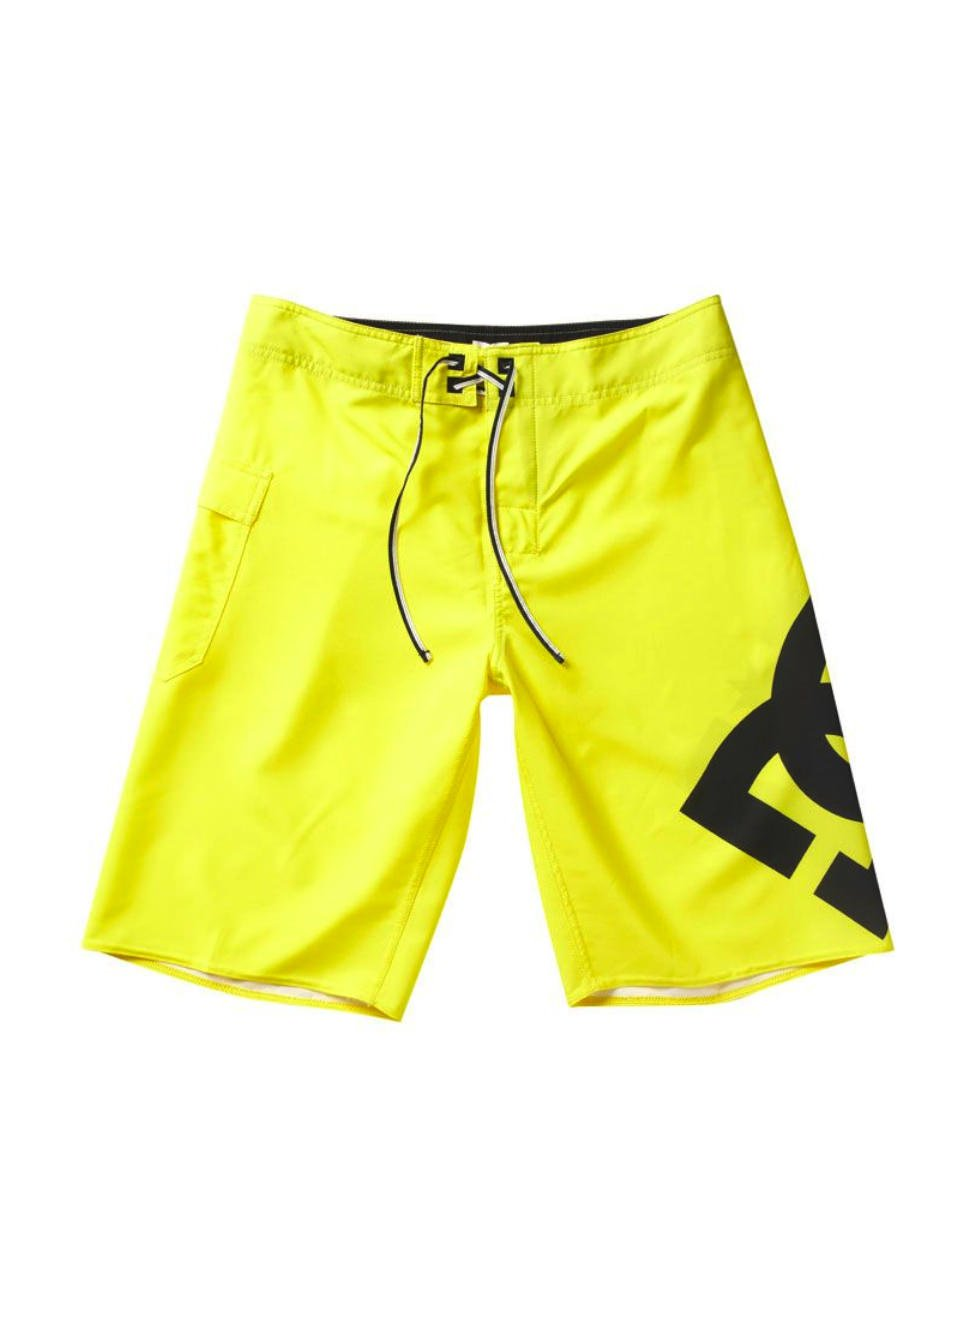 DC SHOES LANAI - LM BOARD STORE